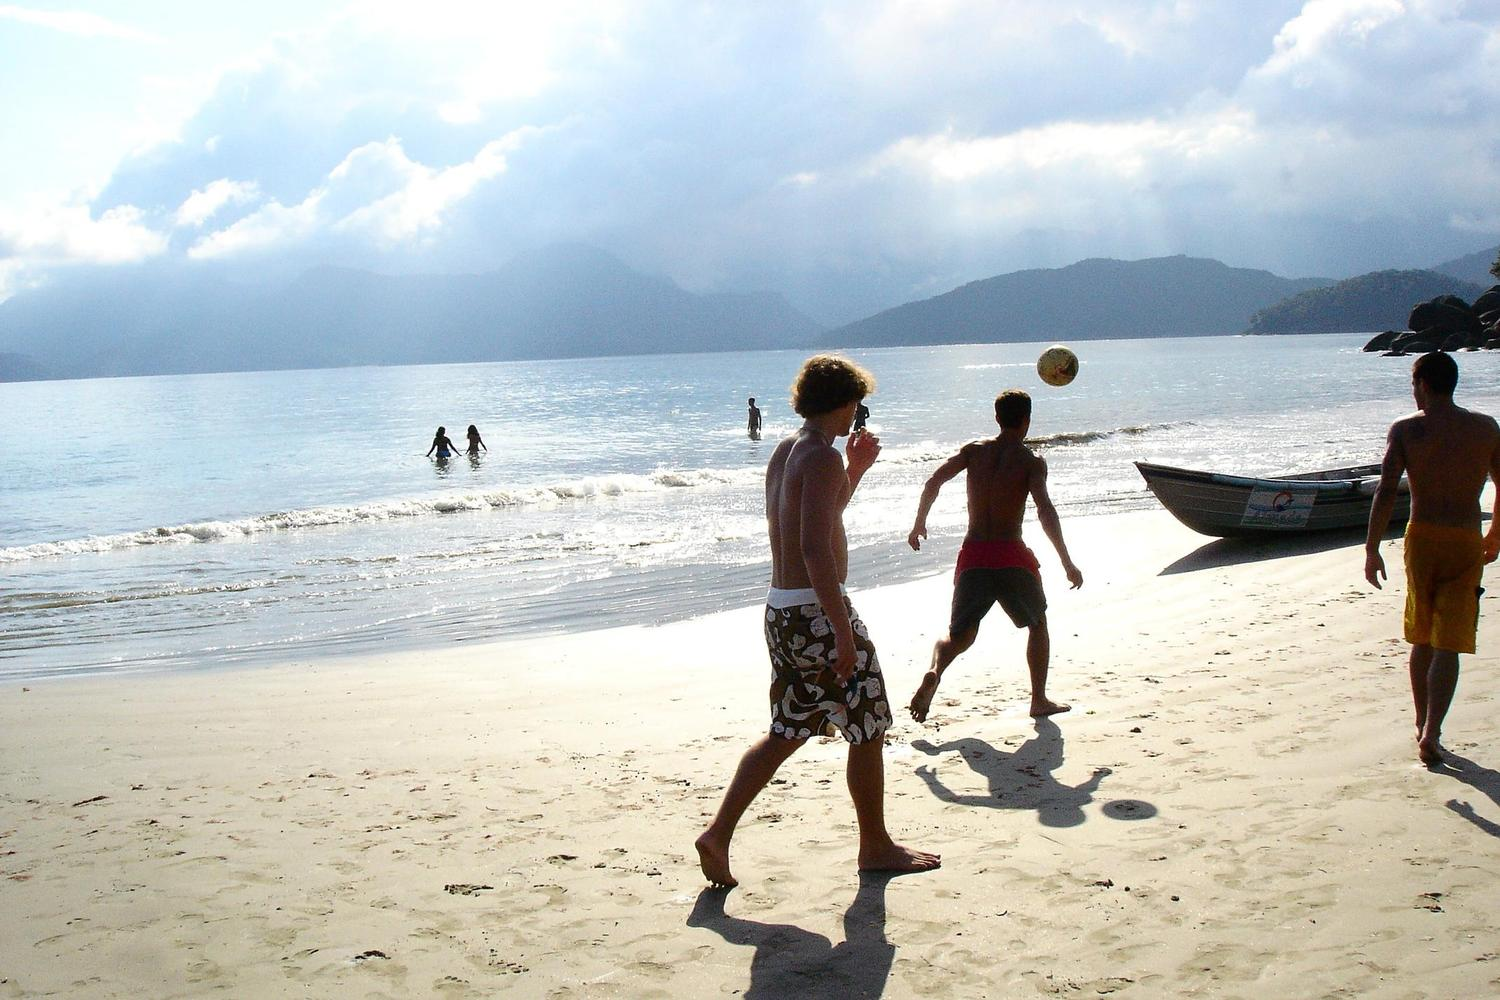 Beach football game at Paraty